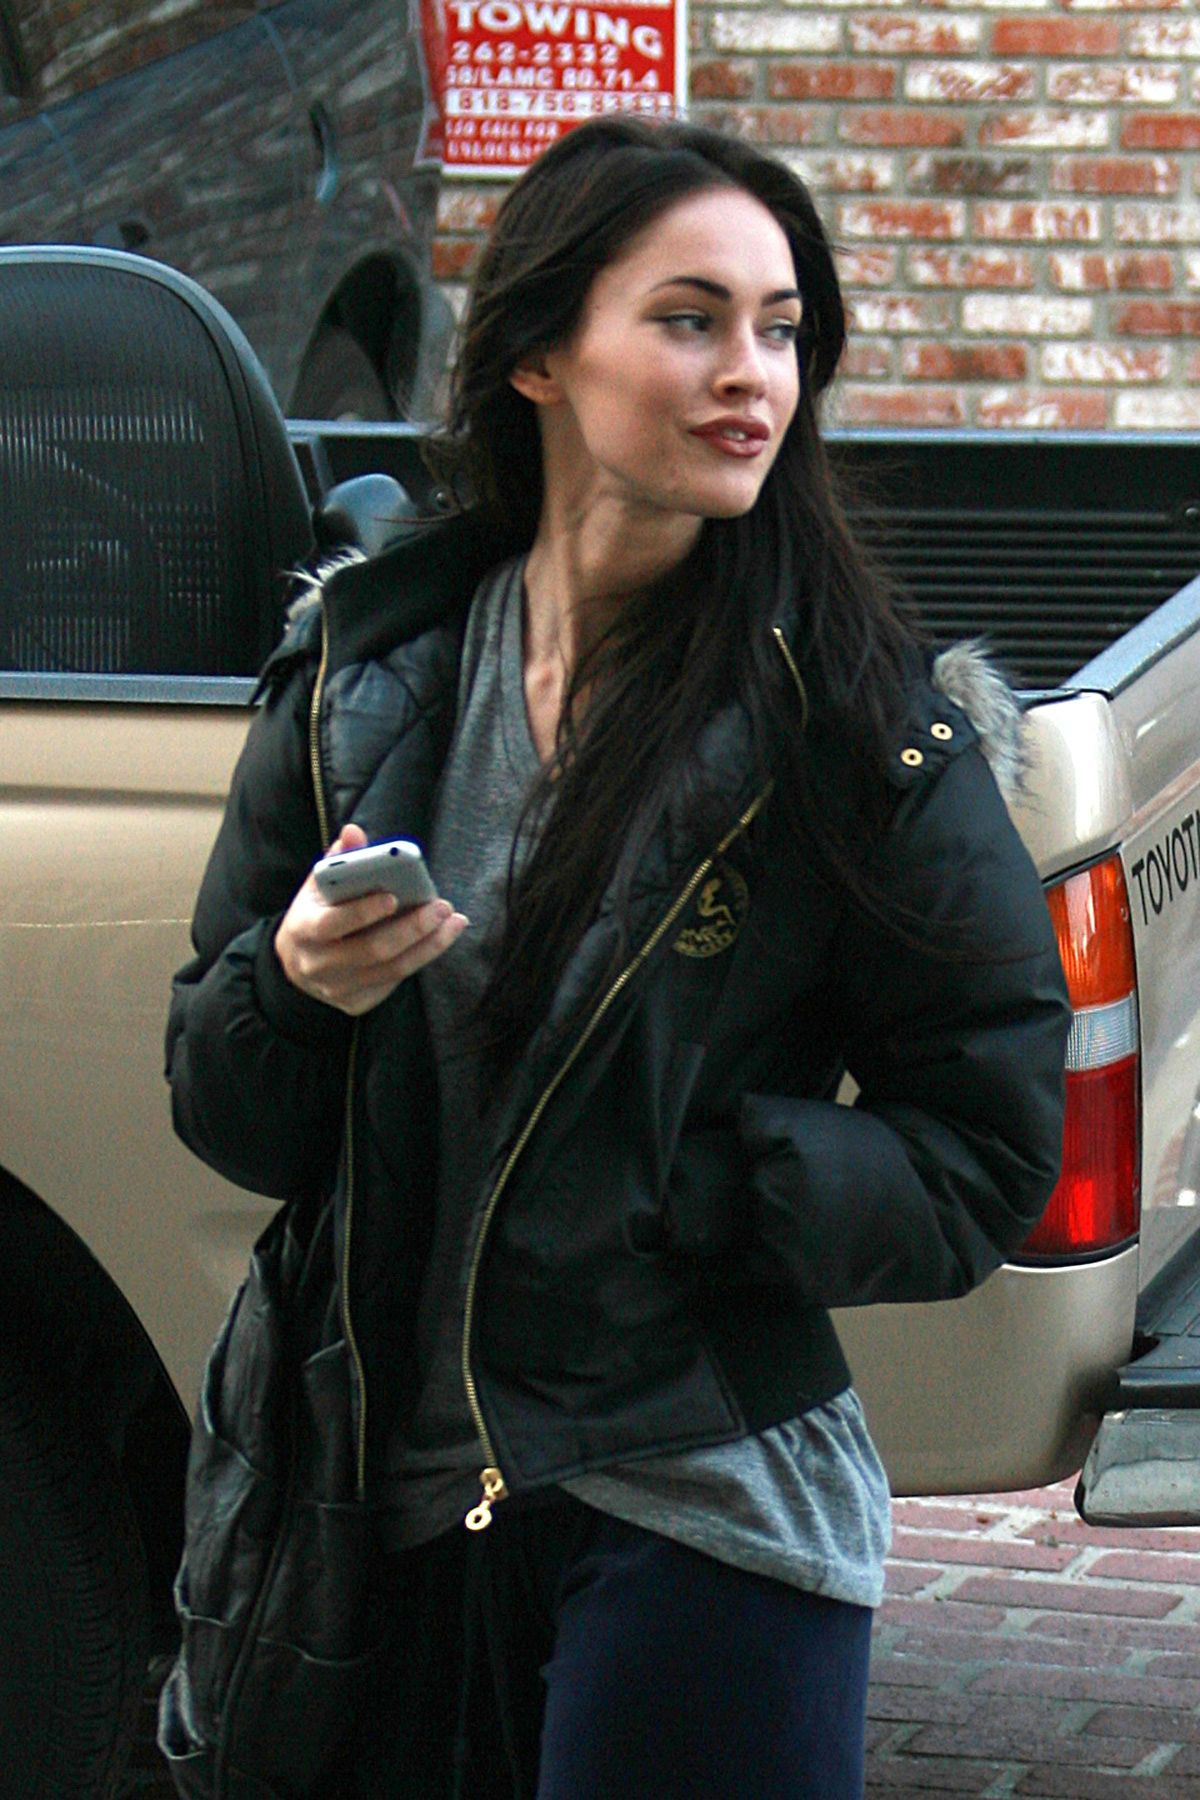 Megan Fox Without Makeup before driving